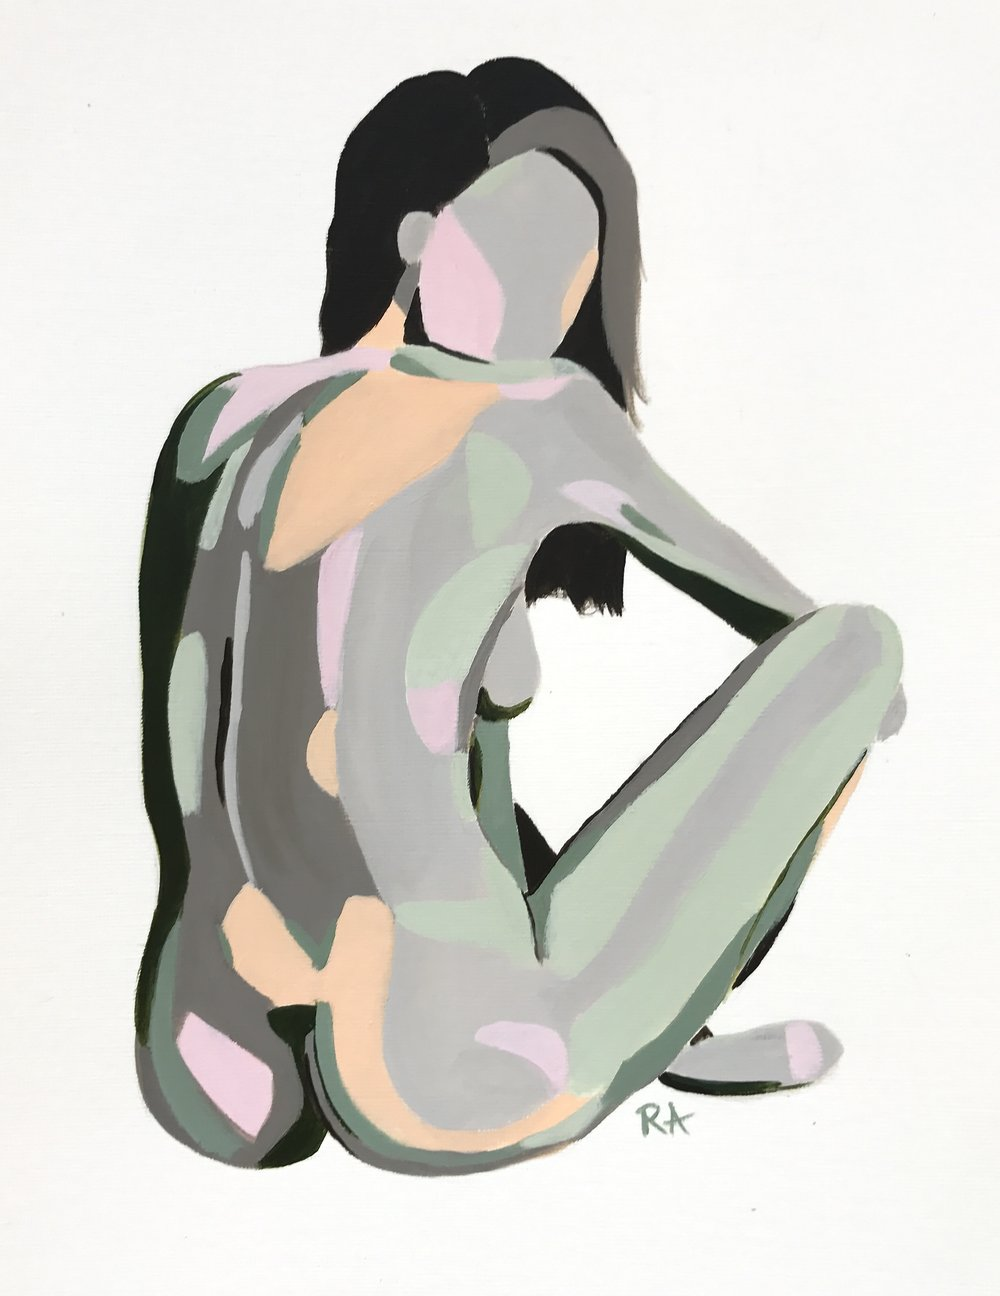 Over the Shoulder Nude, acrylic on paper, 2016